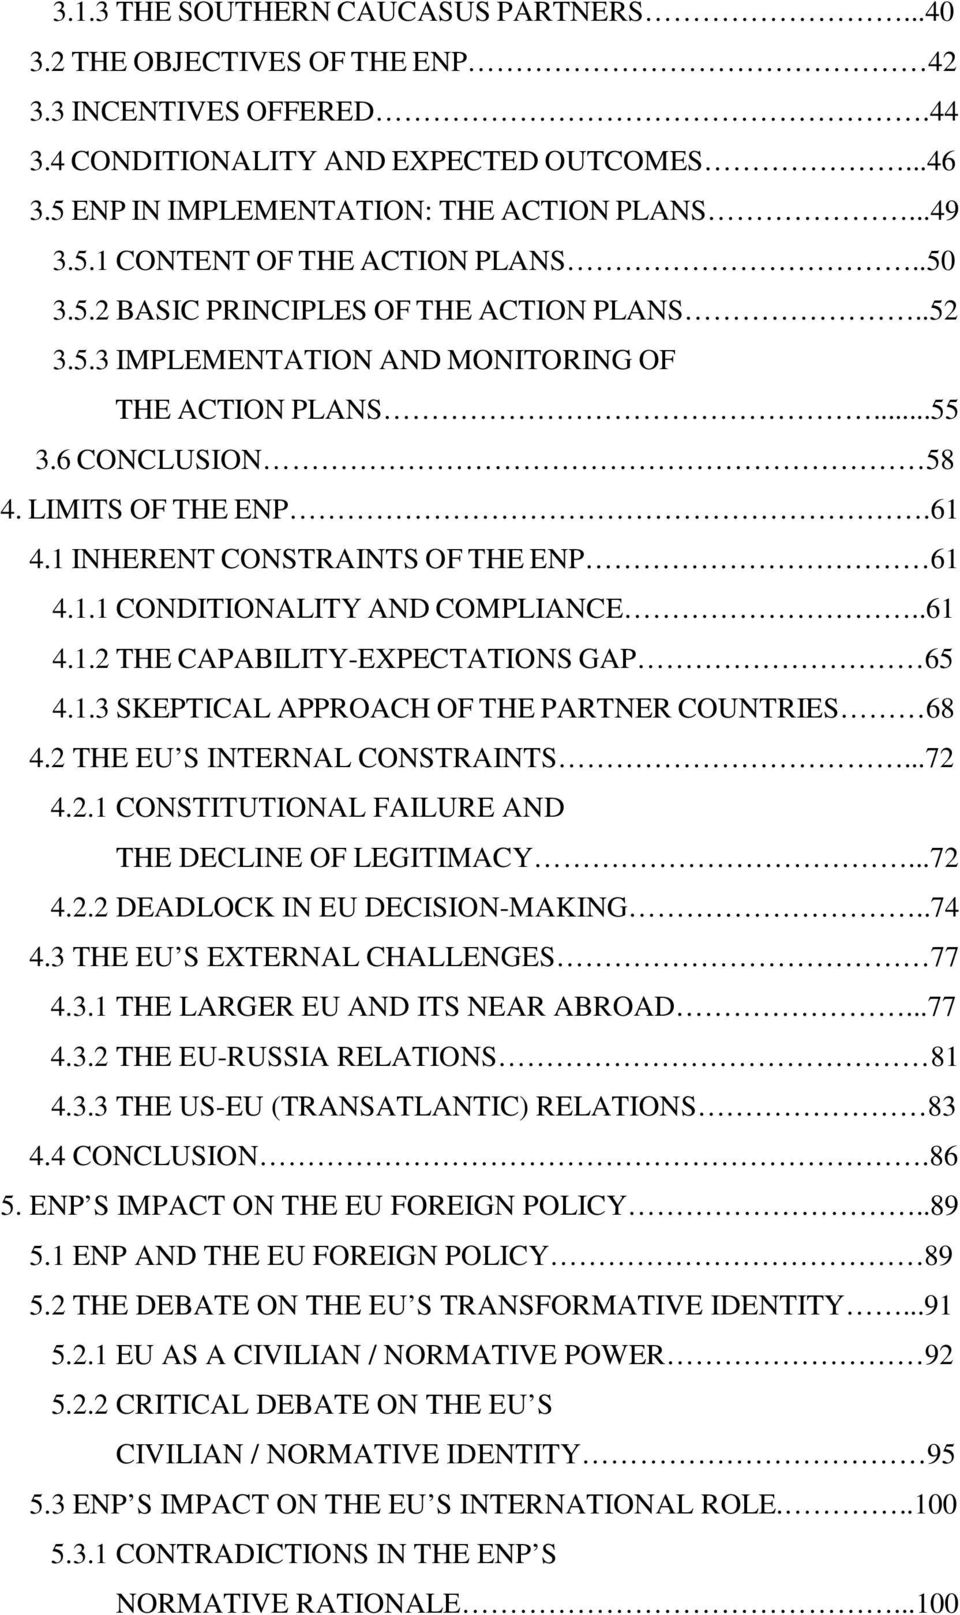 .61 4.1.2 THE CAPABILITY-EXPECTATIONS GAP 65 4.1.3 SKEPTICAL APPROACH OF THE PARTNER COUNTRIES 68 4.2 THE EU S INTERNAL CONSTRAINTS...72 4.2.1 CONSTITUTIONAL FAILURE AND THE DECLINE OF LEGITIMACY.